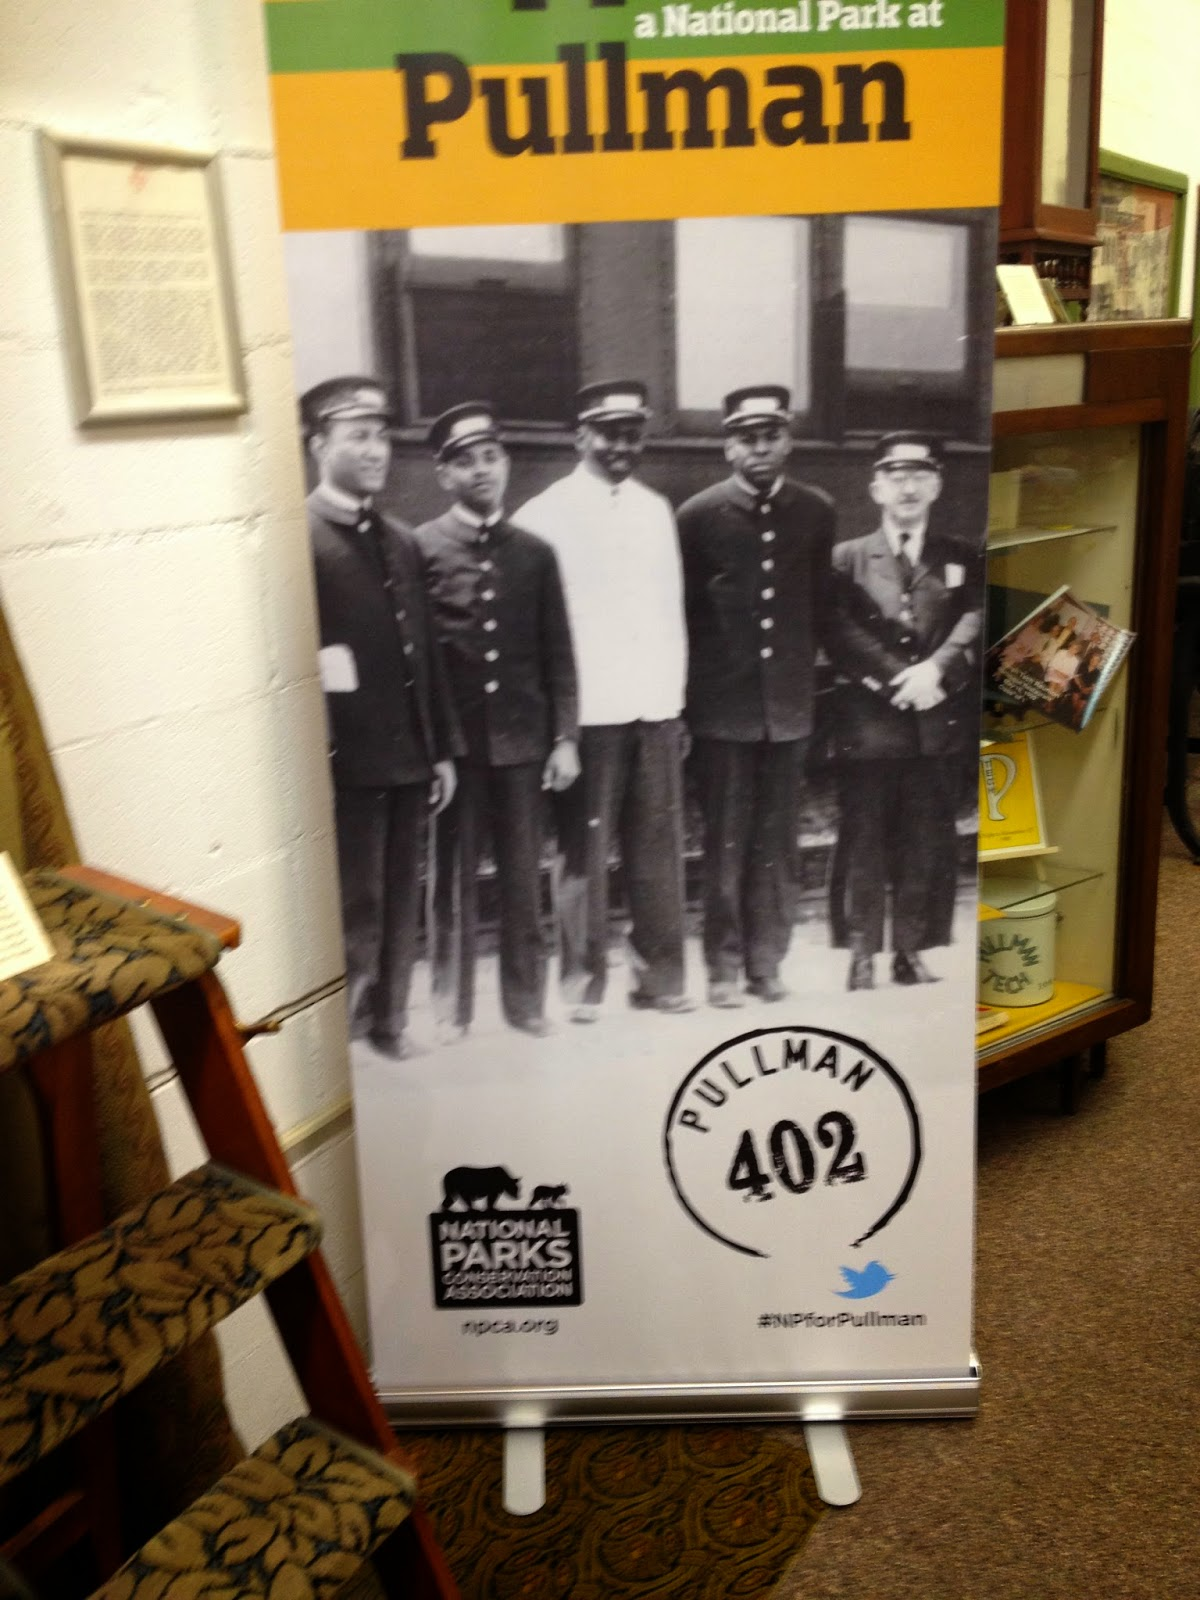 The Brotherhood of Sleeping Car Porters